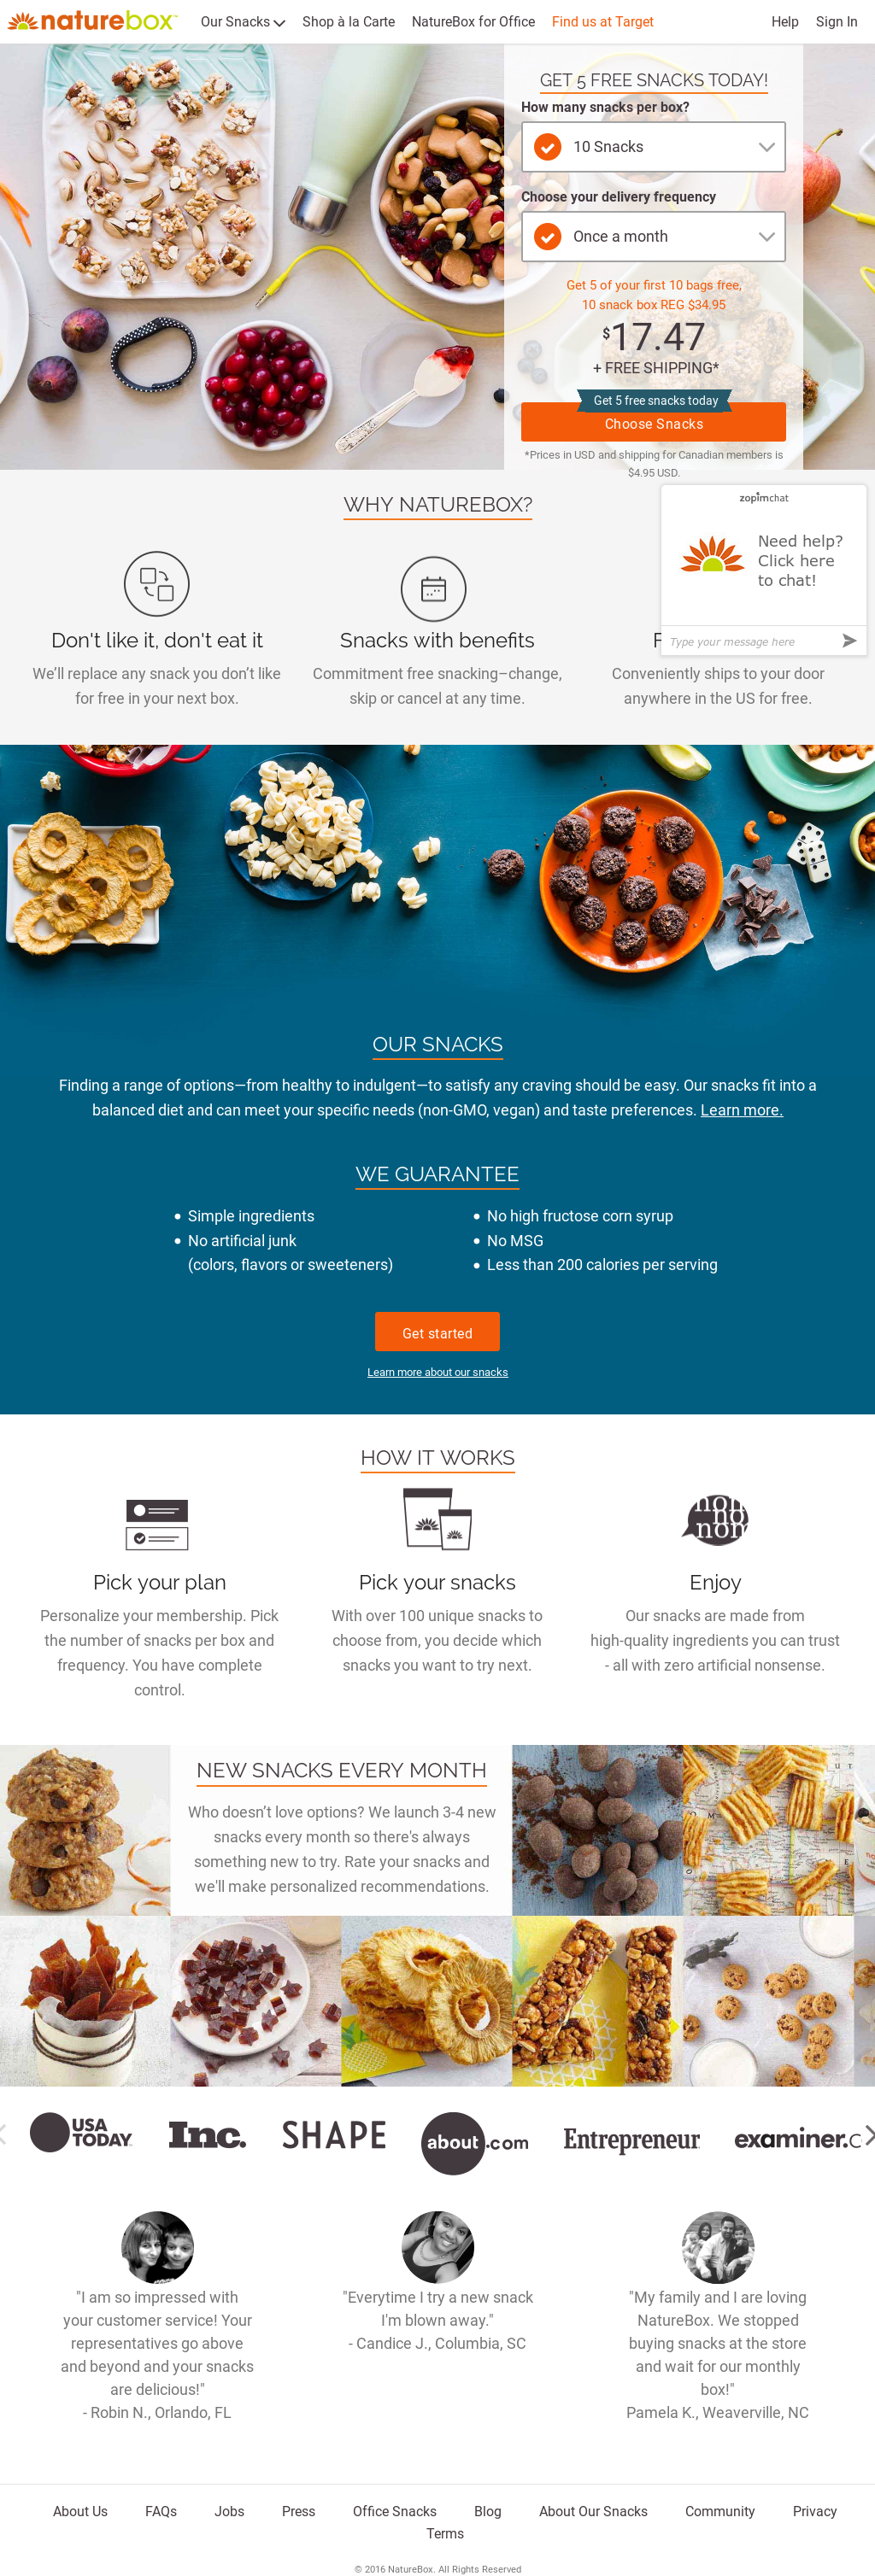 NatureBox Competitors, Revenue and Employees - Owler Company